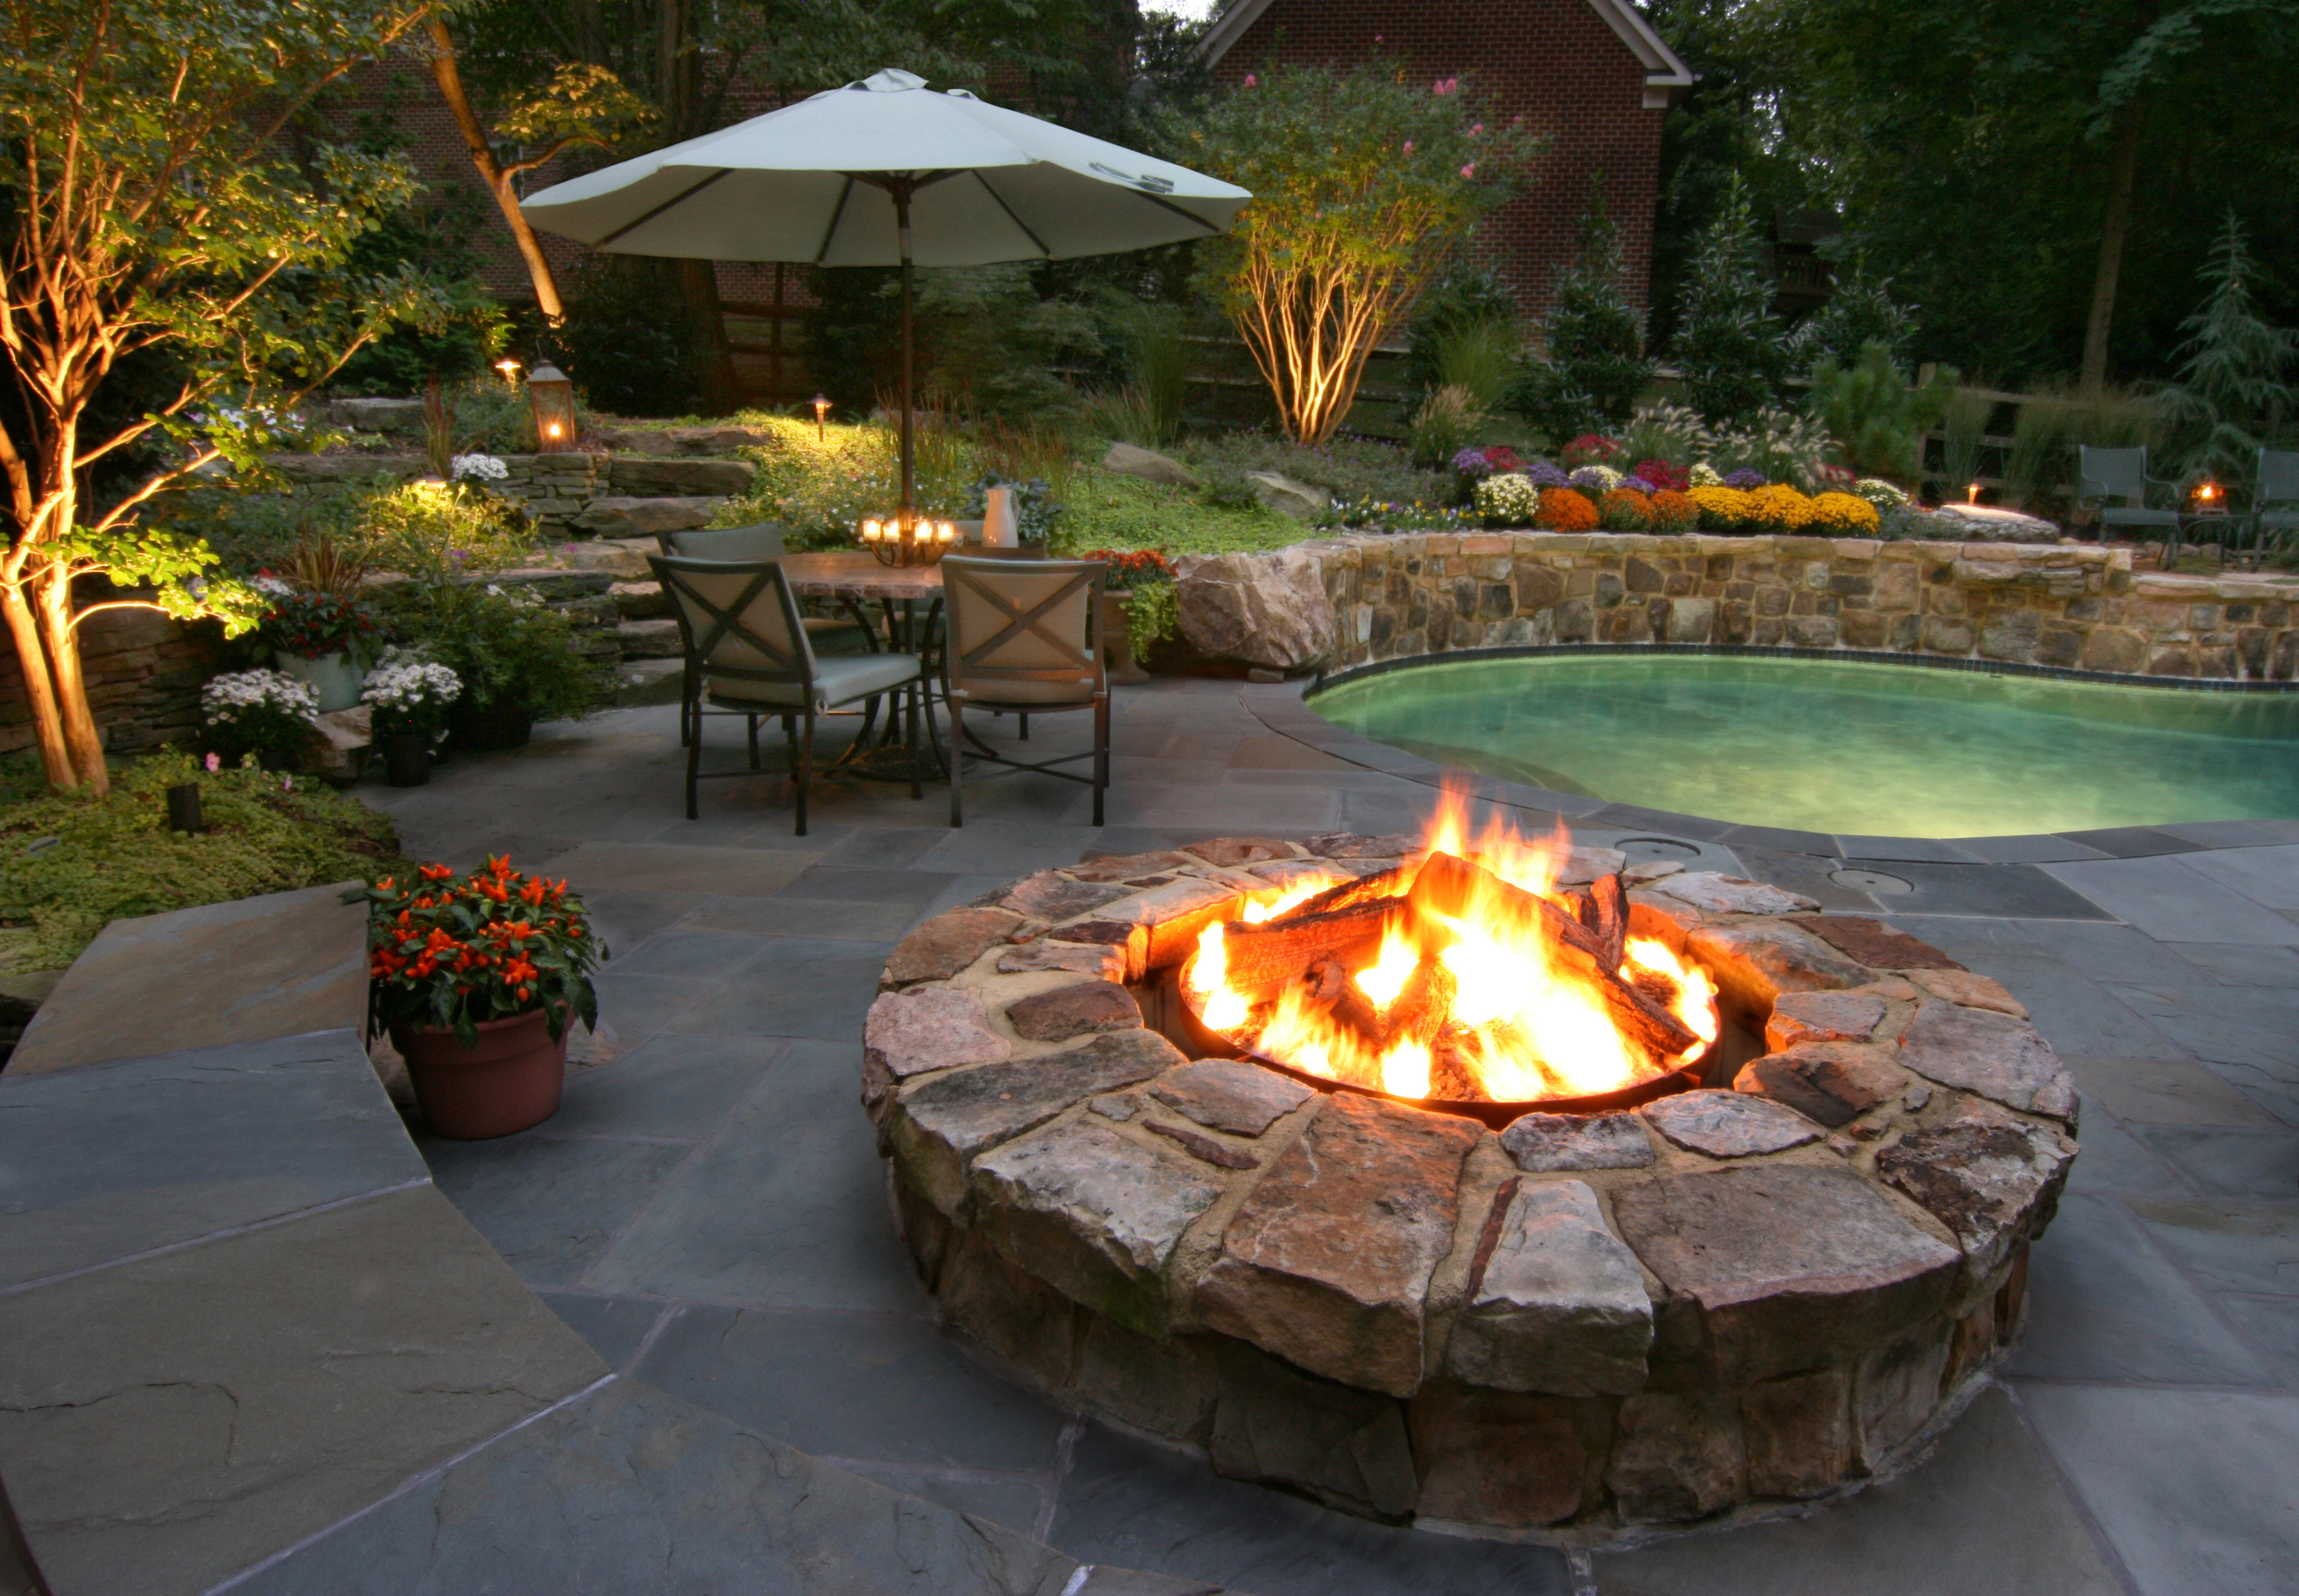 Poolside-Fire-Pit Natural Fire Pit Ideas Backyard on backyard tree house ideas, backyard picnic area ideas, backyard grill ideas, backyard pond ideas, backyard gazebo ideas, backyard water ideas, backyard swing ideas, backyard clubhouse ideas, backyard garden ideas, backyard hot tub ideas, backyard gym ideas, backyard furniture ideas, backyard stone ideas, backyard horseshoe pit ideas, backyard sport court ideas, backyard fire ring ideas, backyard outdoor shower ideas, backyard beach ideas, backyard lighting ideas, backyard gas fire pits,